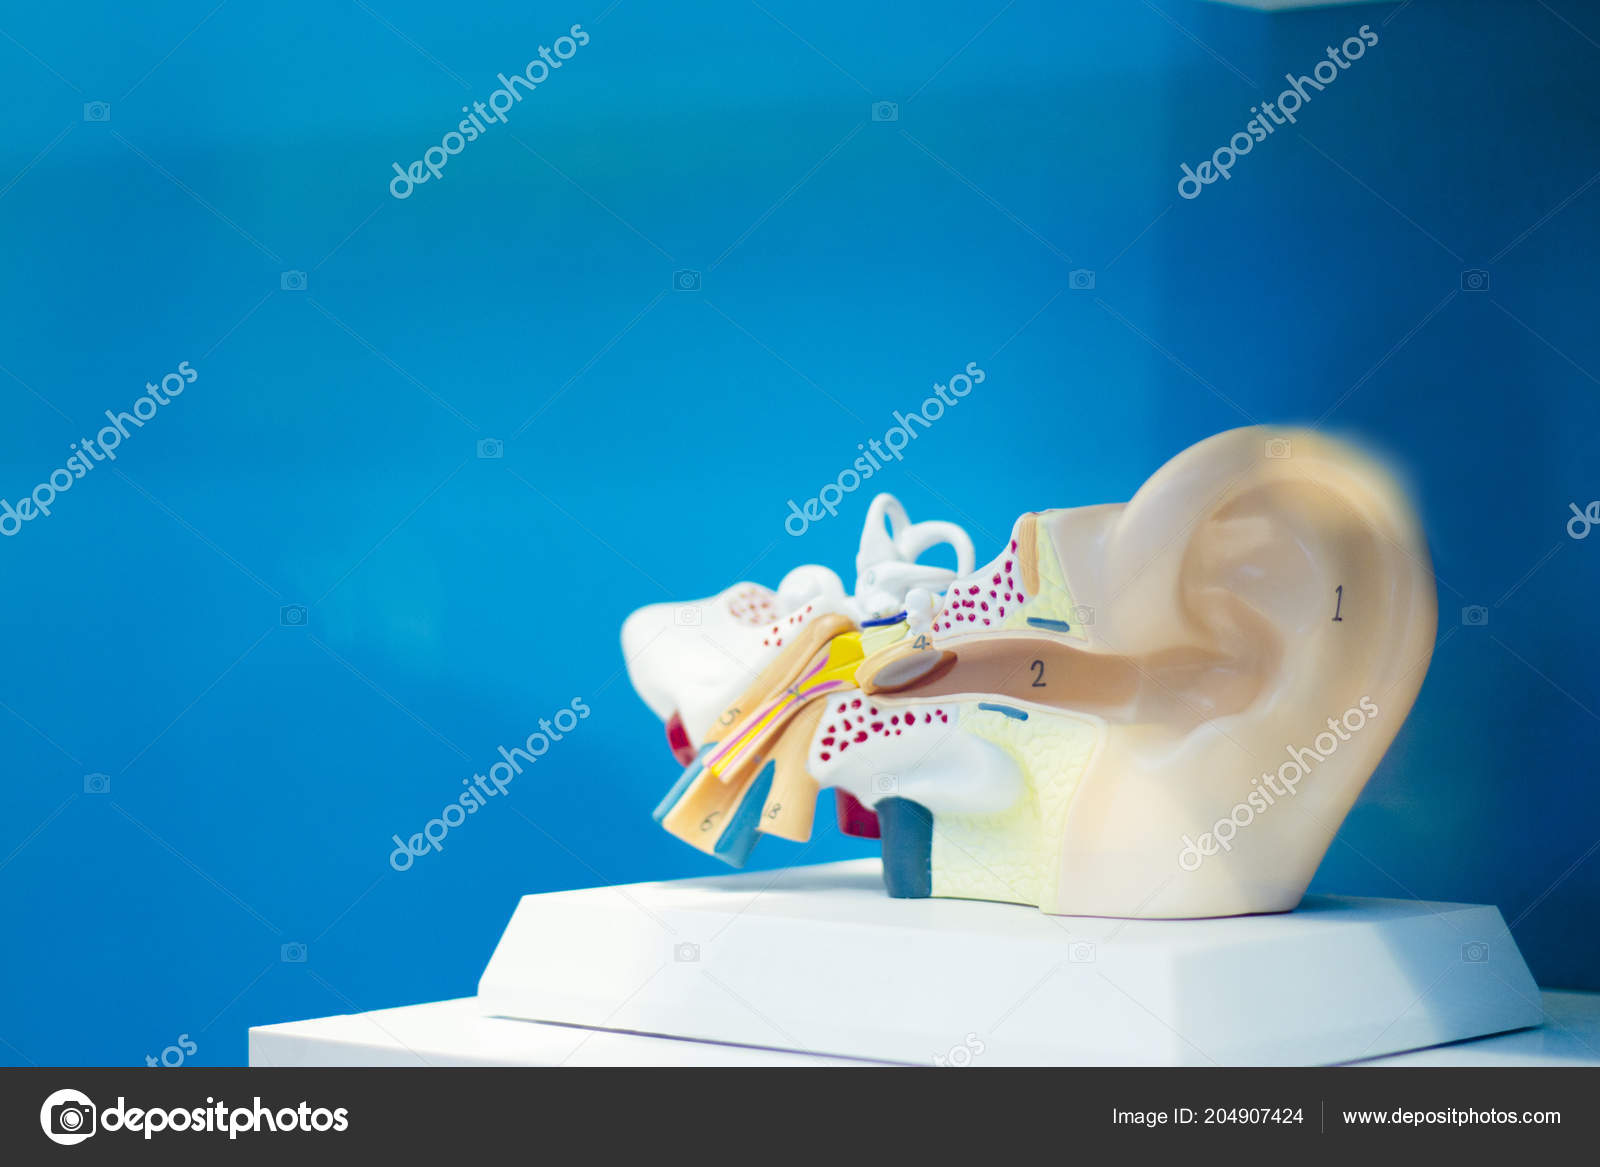 Anatomy Human Ear Internal Parts Form People Stock Photo